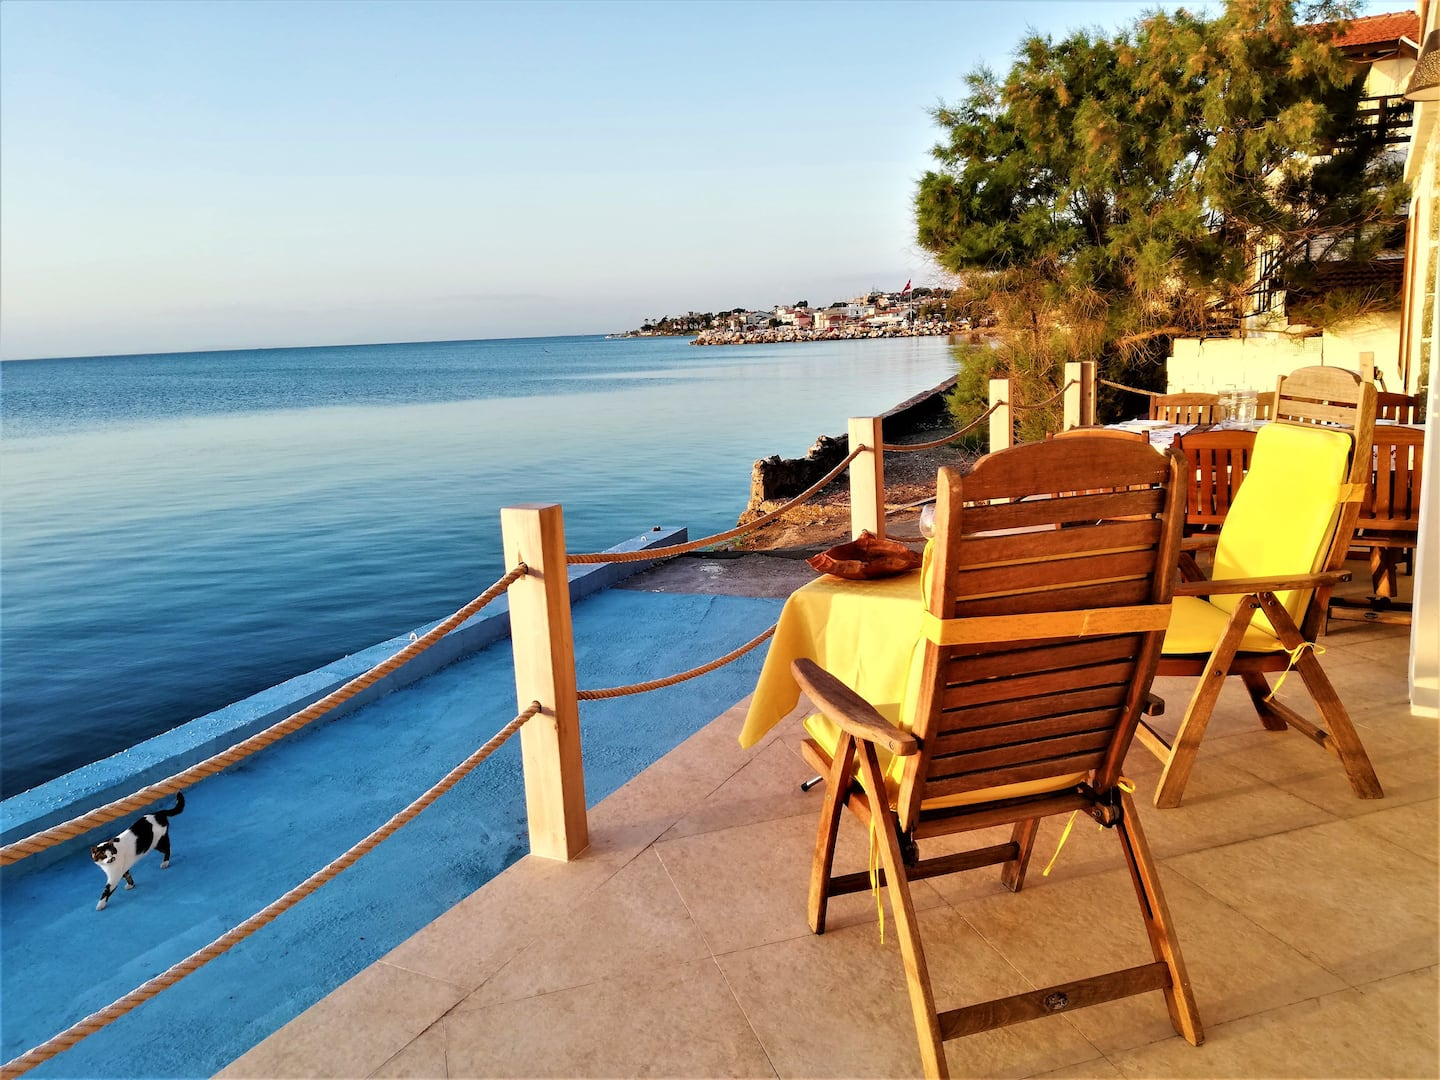 Christmas in Turkey, Urla: Feet in the water for Christmas